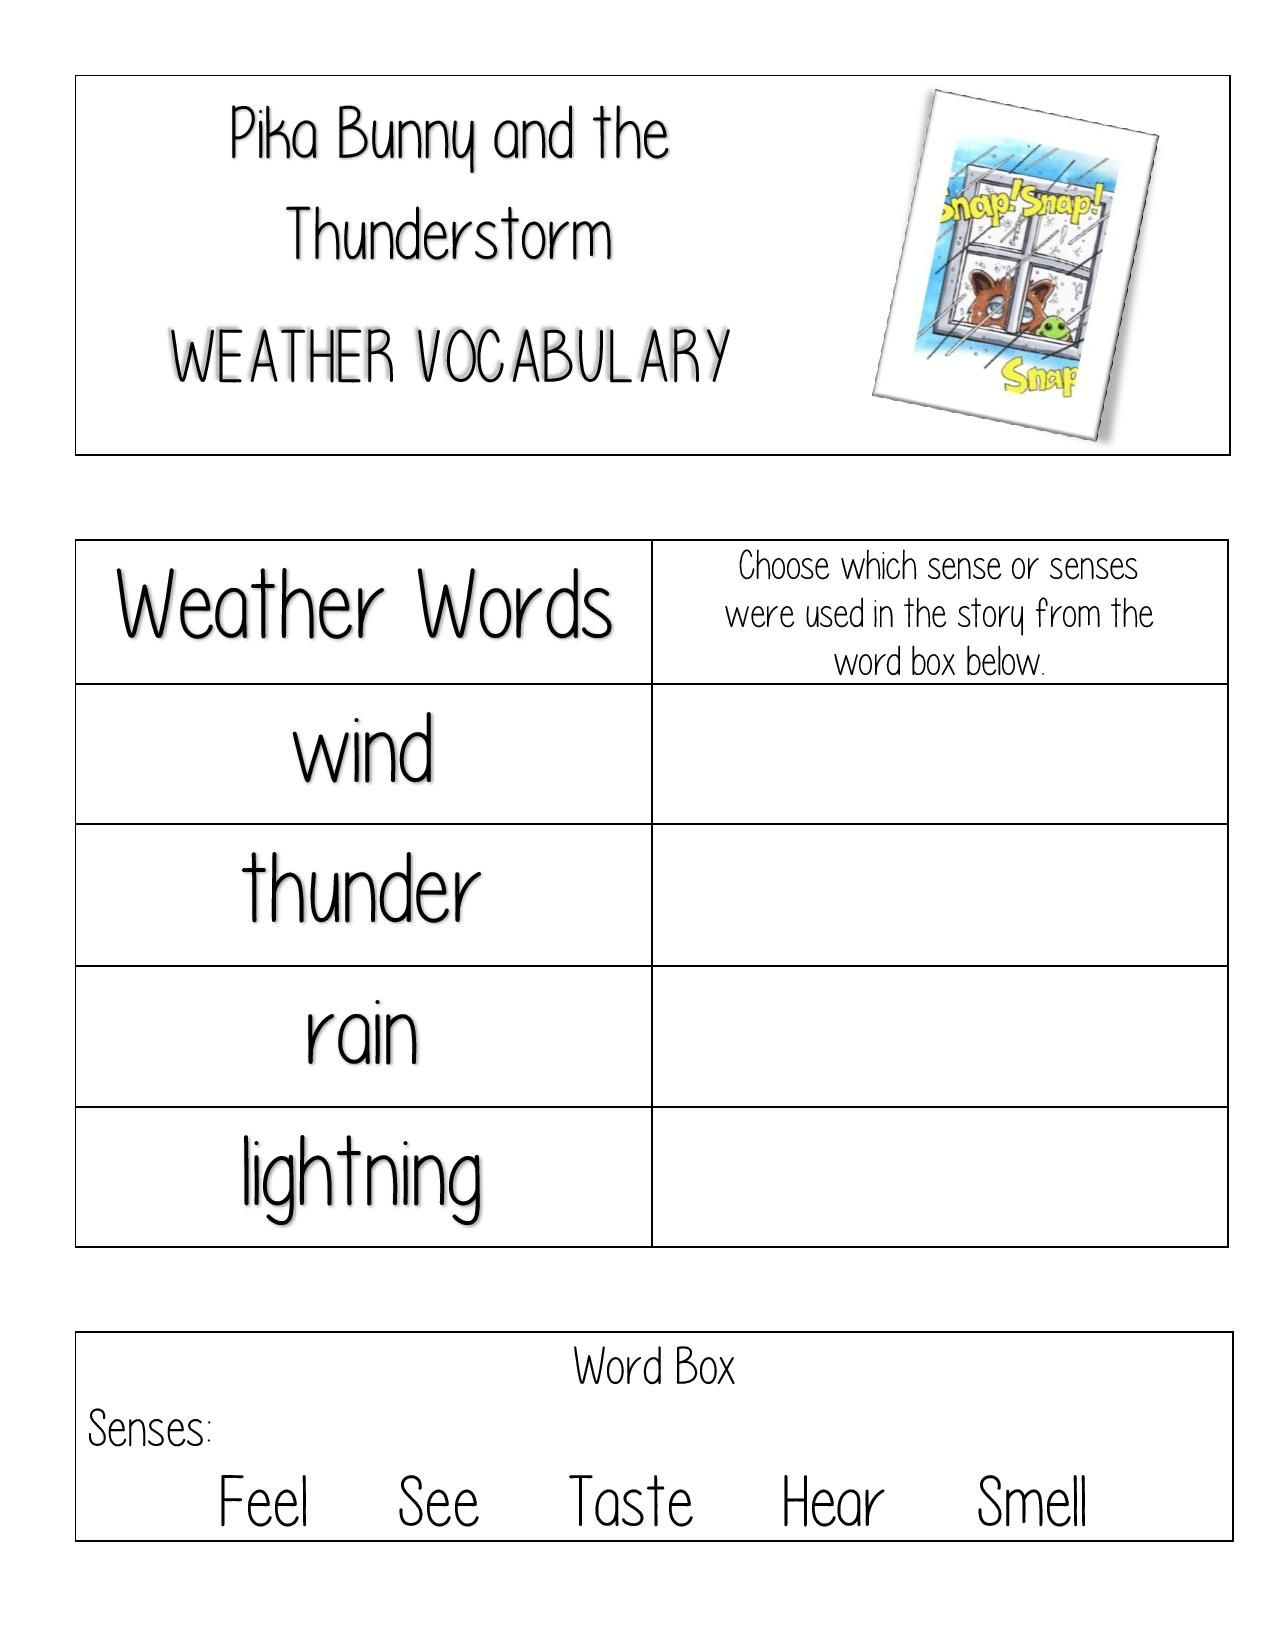 Free Weather Worksheet For Teachers And Homeschool For Pika Bunny And The Thunderstorm